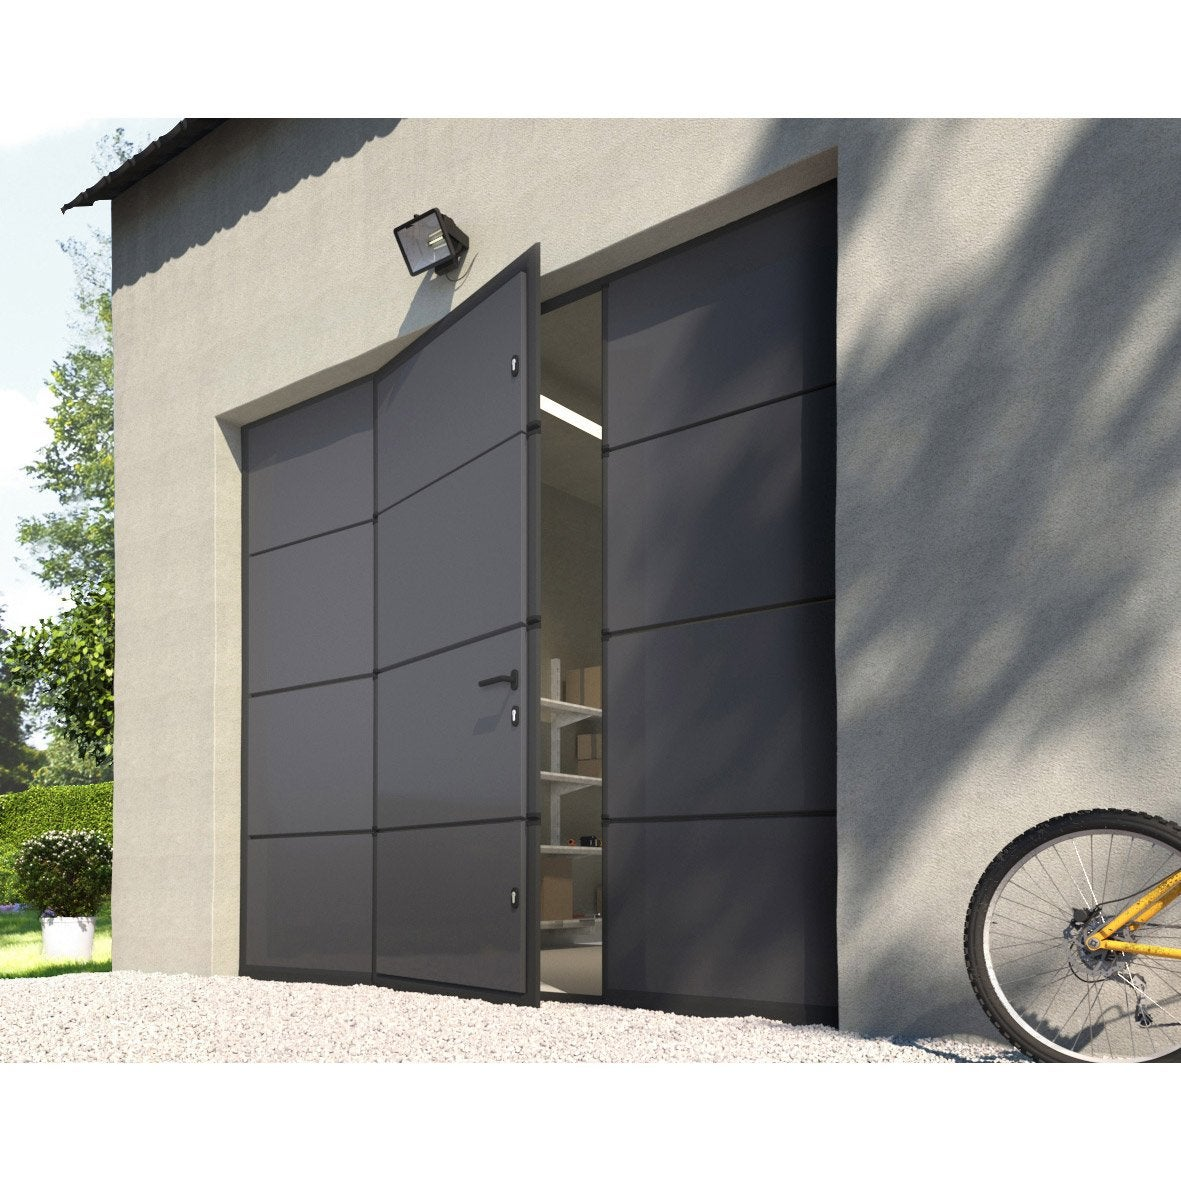 Porte de garage sectionnelle motoris e artens essentiel 200x240cm avec portillon leroy merlin - Porte de garage sectionnelle ...